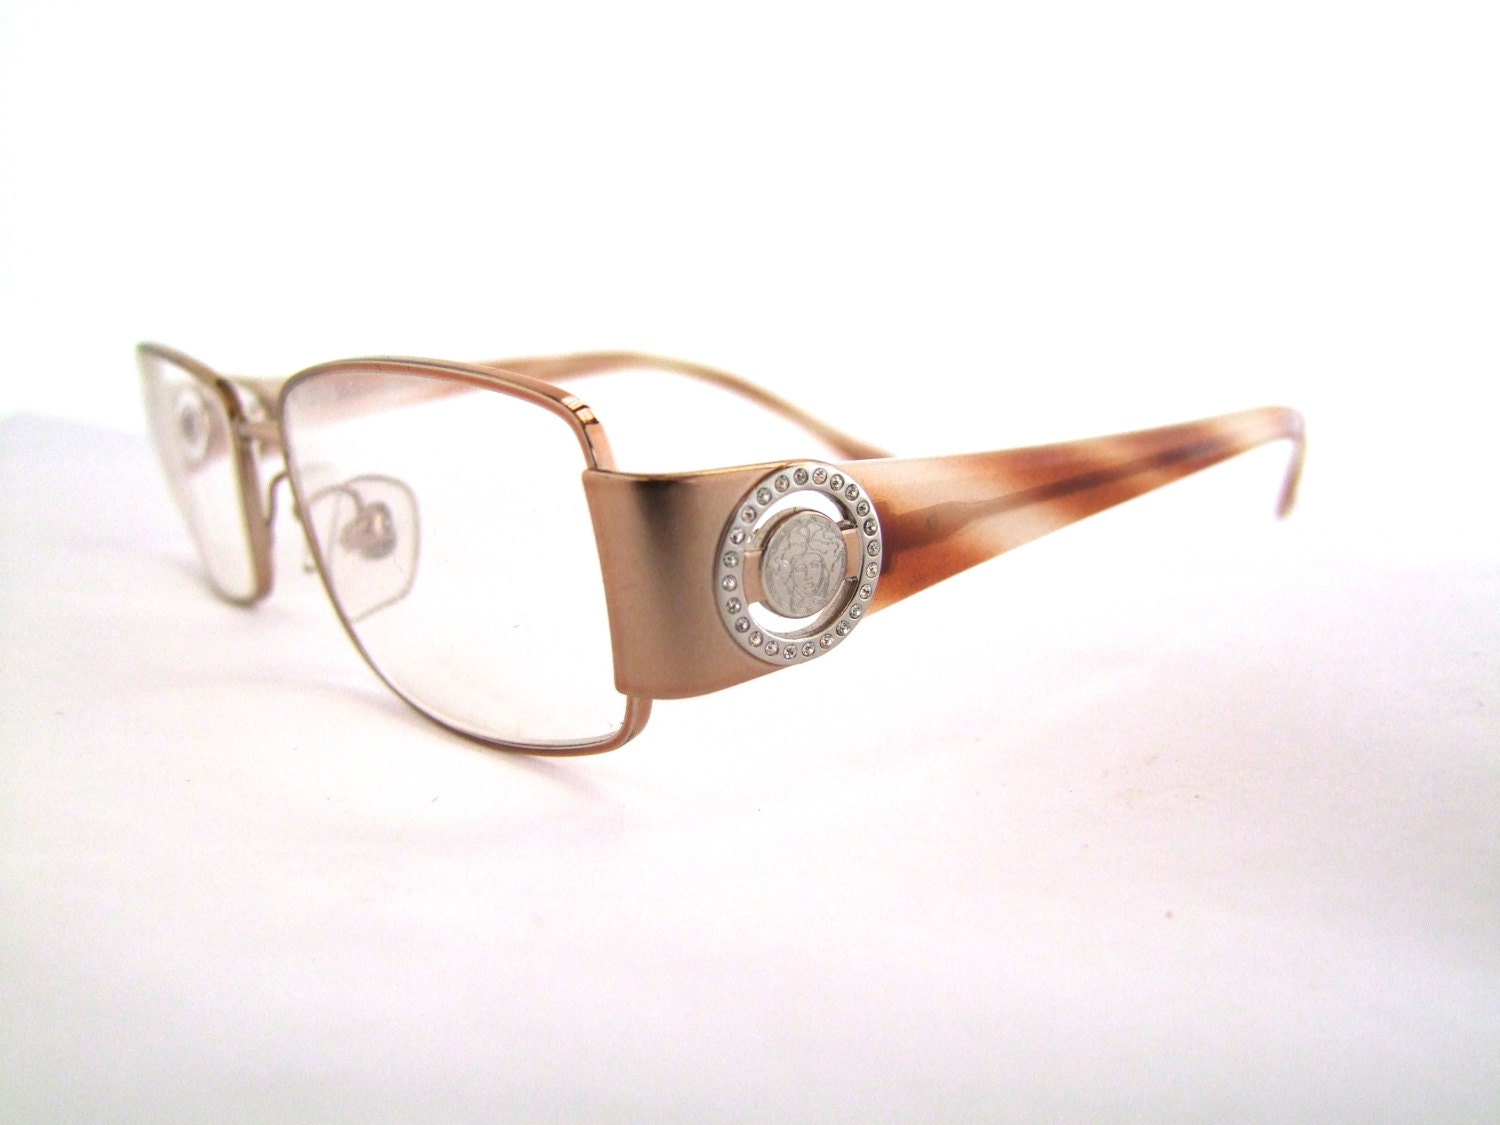 Designer Eyeglass Frames With Rhinestones : Versace Eyeglasses // with case // Rhinestones // by ...